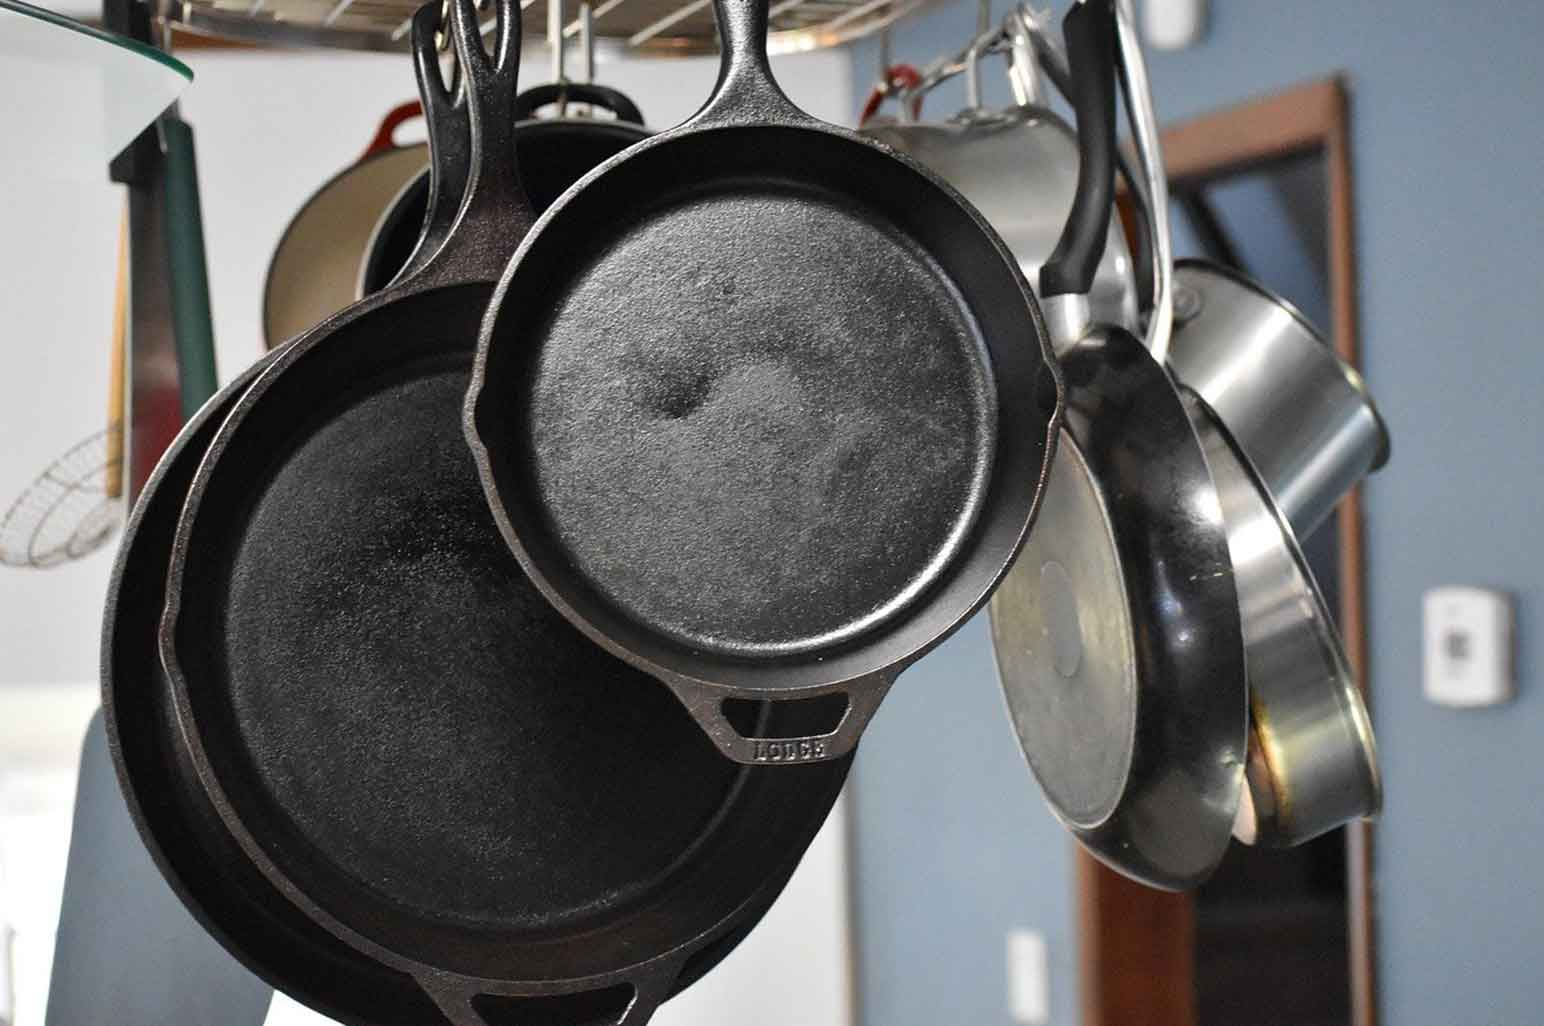 5 Reasons Why You Should Own at Least 2 Non-Stick Pans